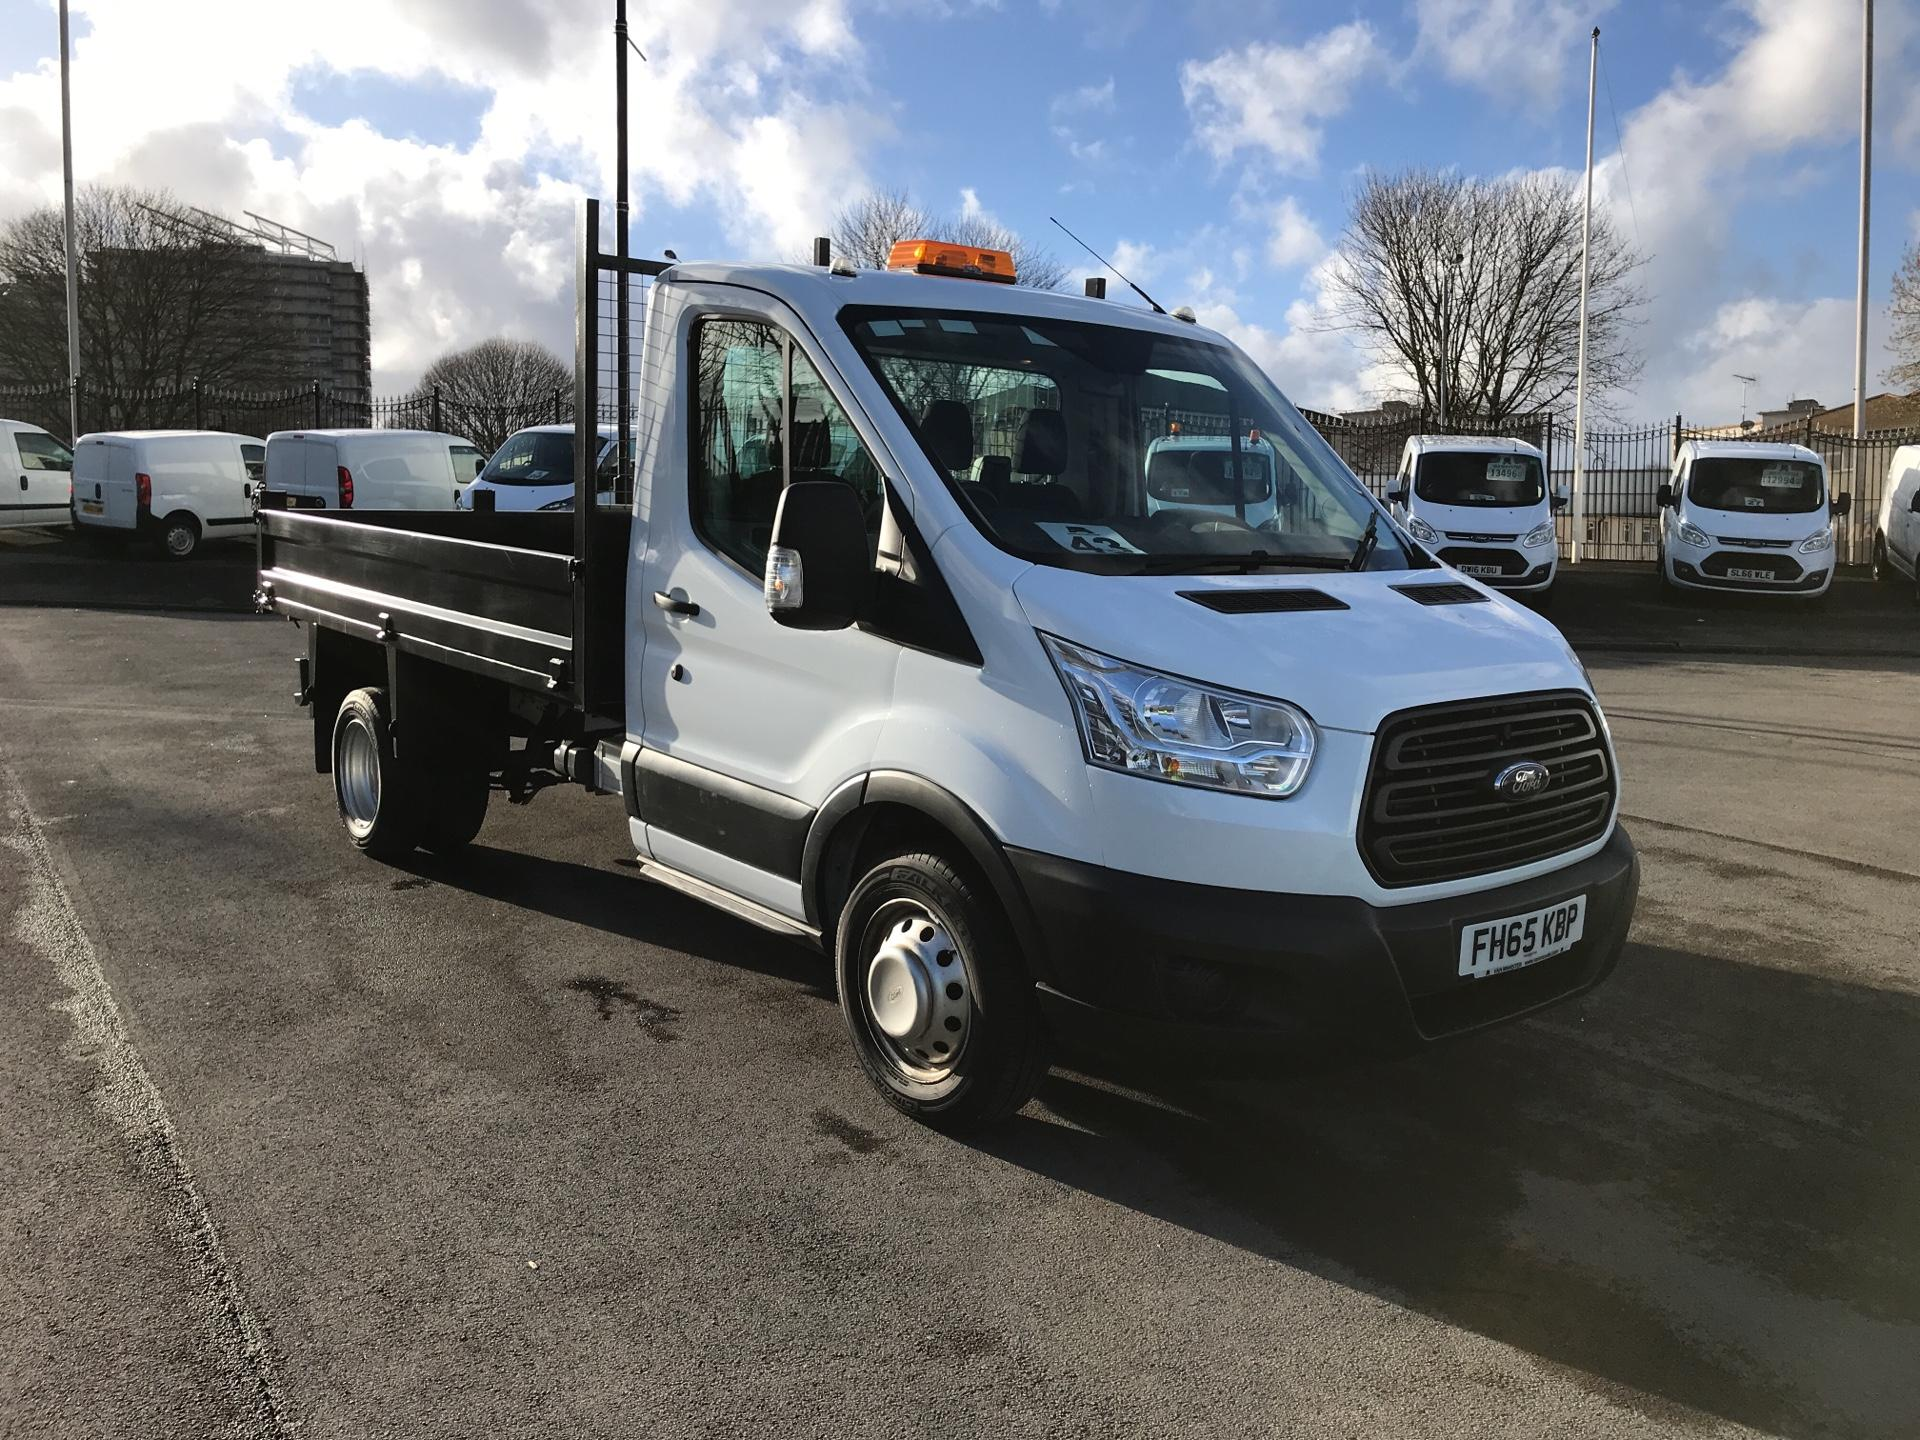 2016 Ford Transit 2.2 TDCI 125PS Single Cab Tipper Euro 5 (FH65KBP)